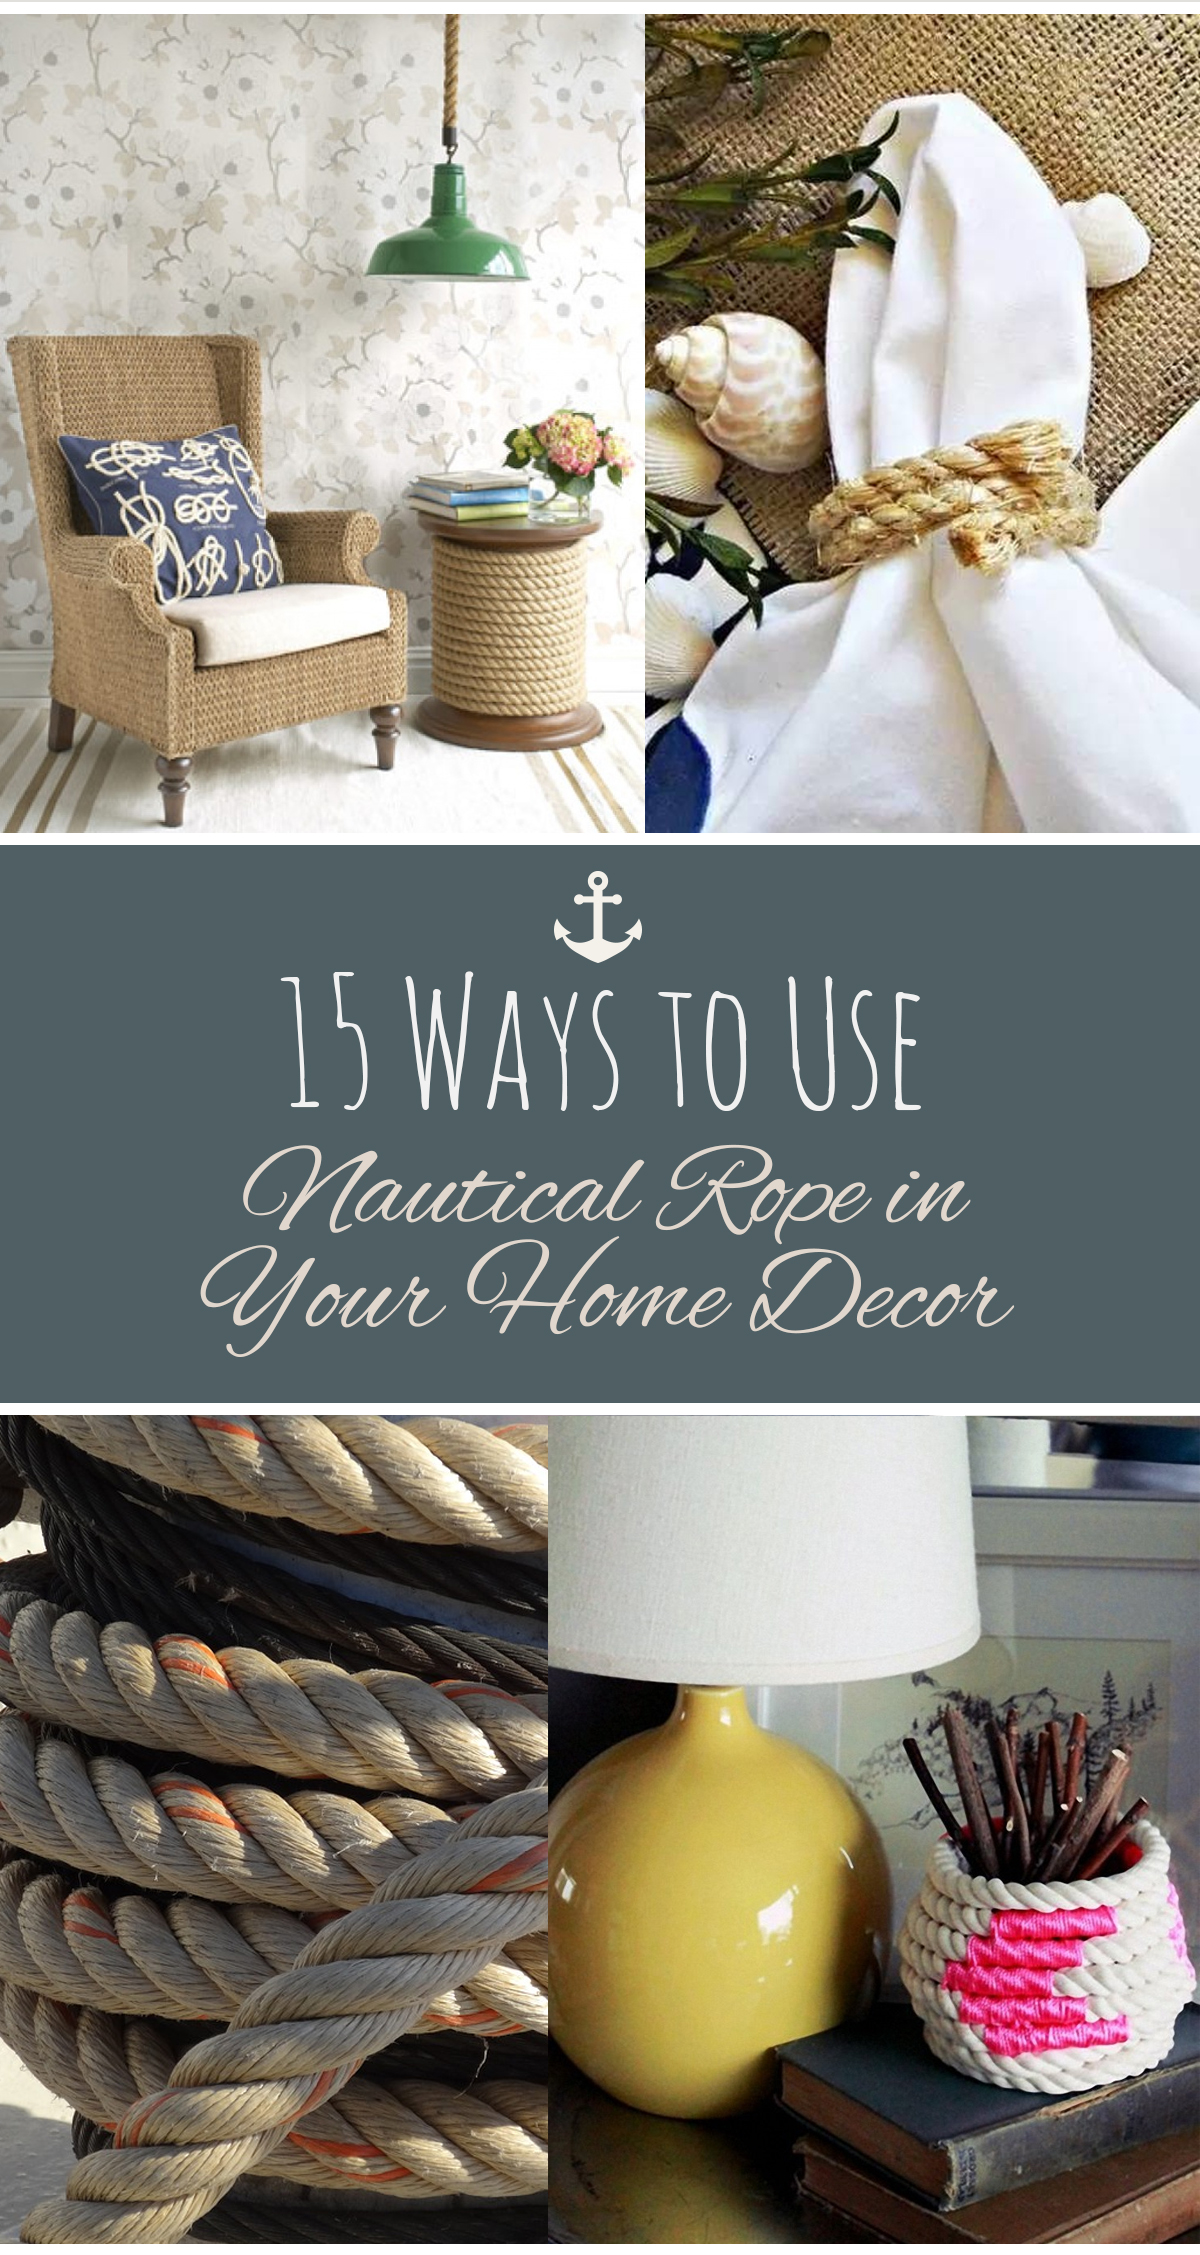 15-ways-to-use-nautical-rope-in-your-home-decor